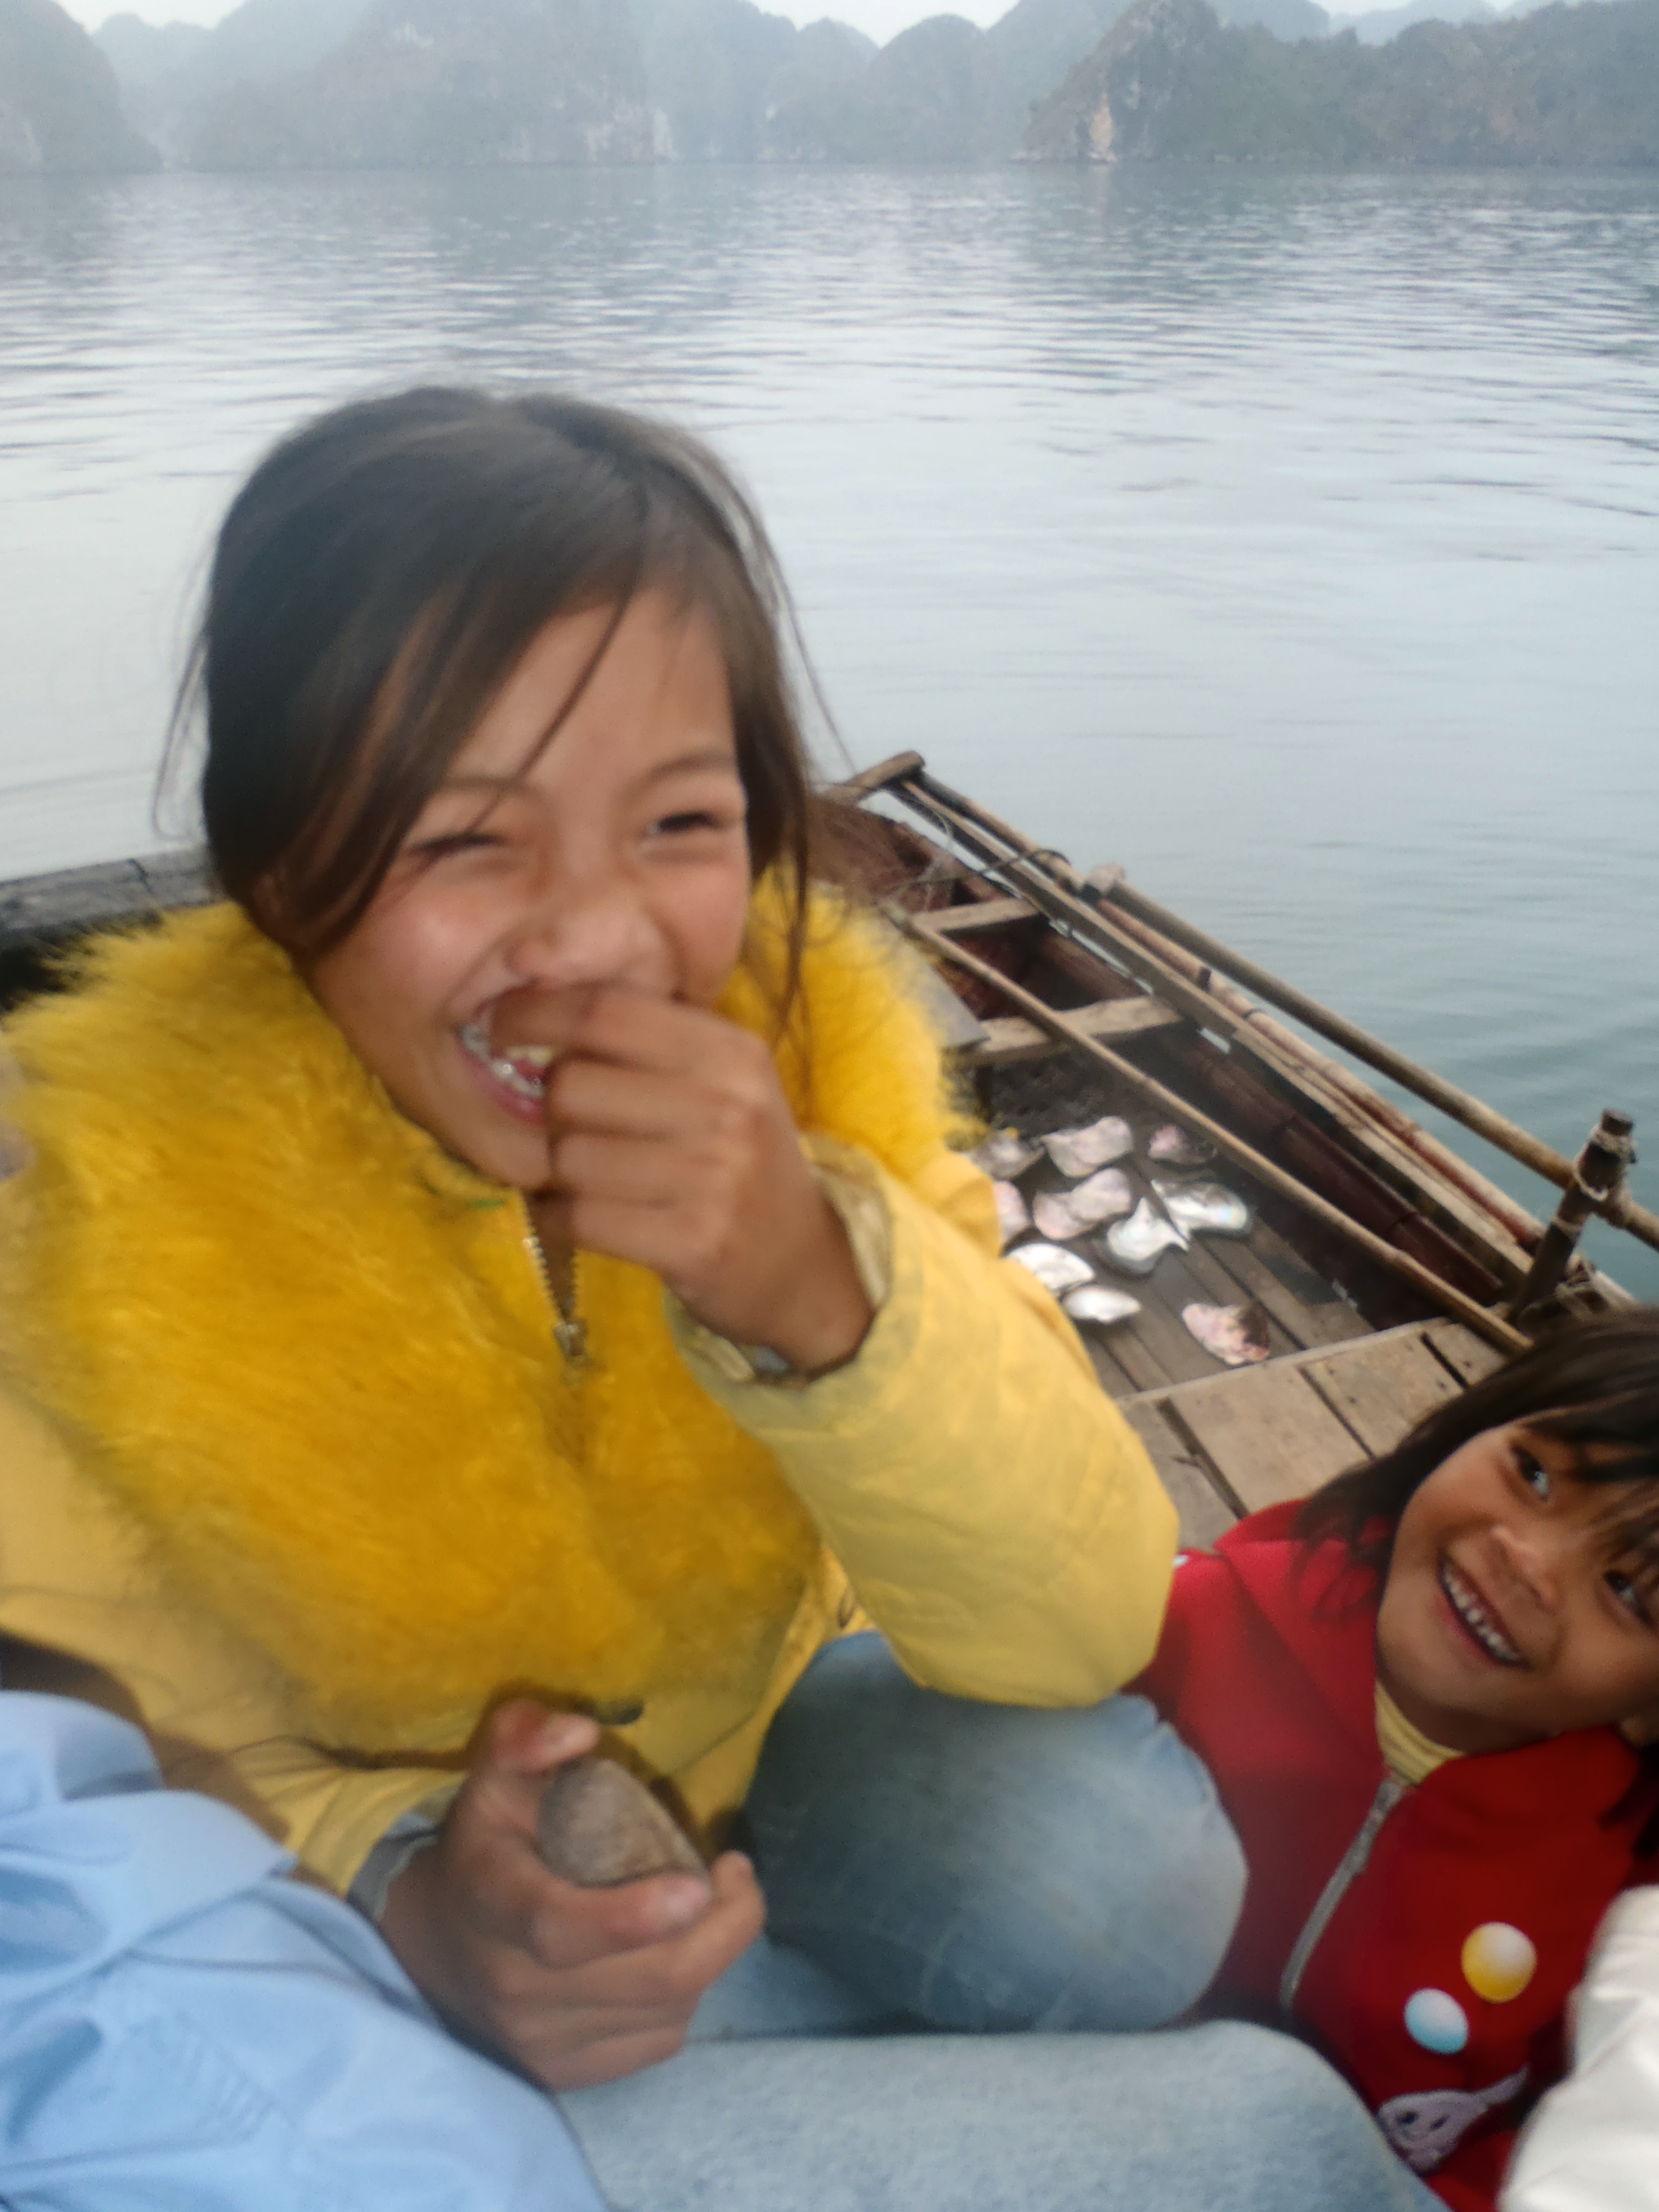 In Ha Long Bay, enjoying the company of children laughing and giggling...